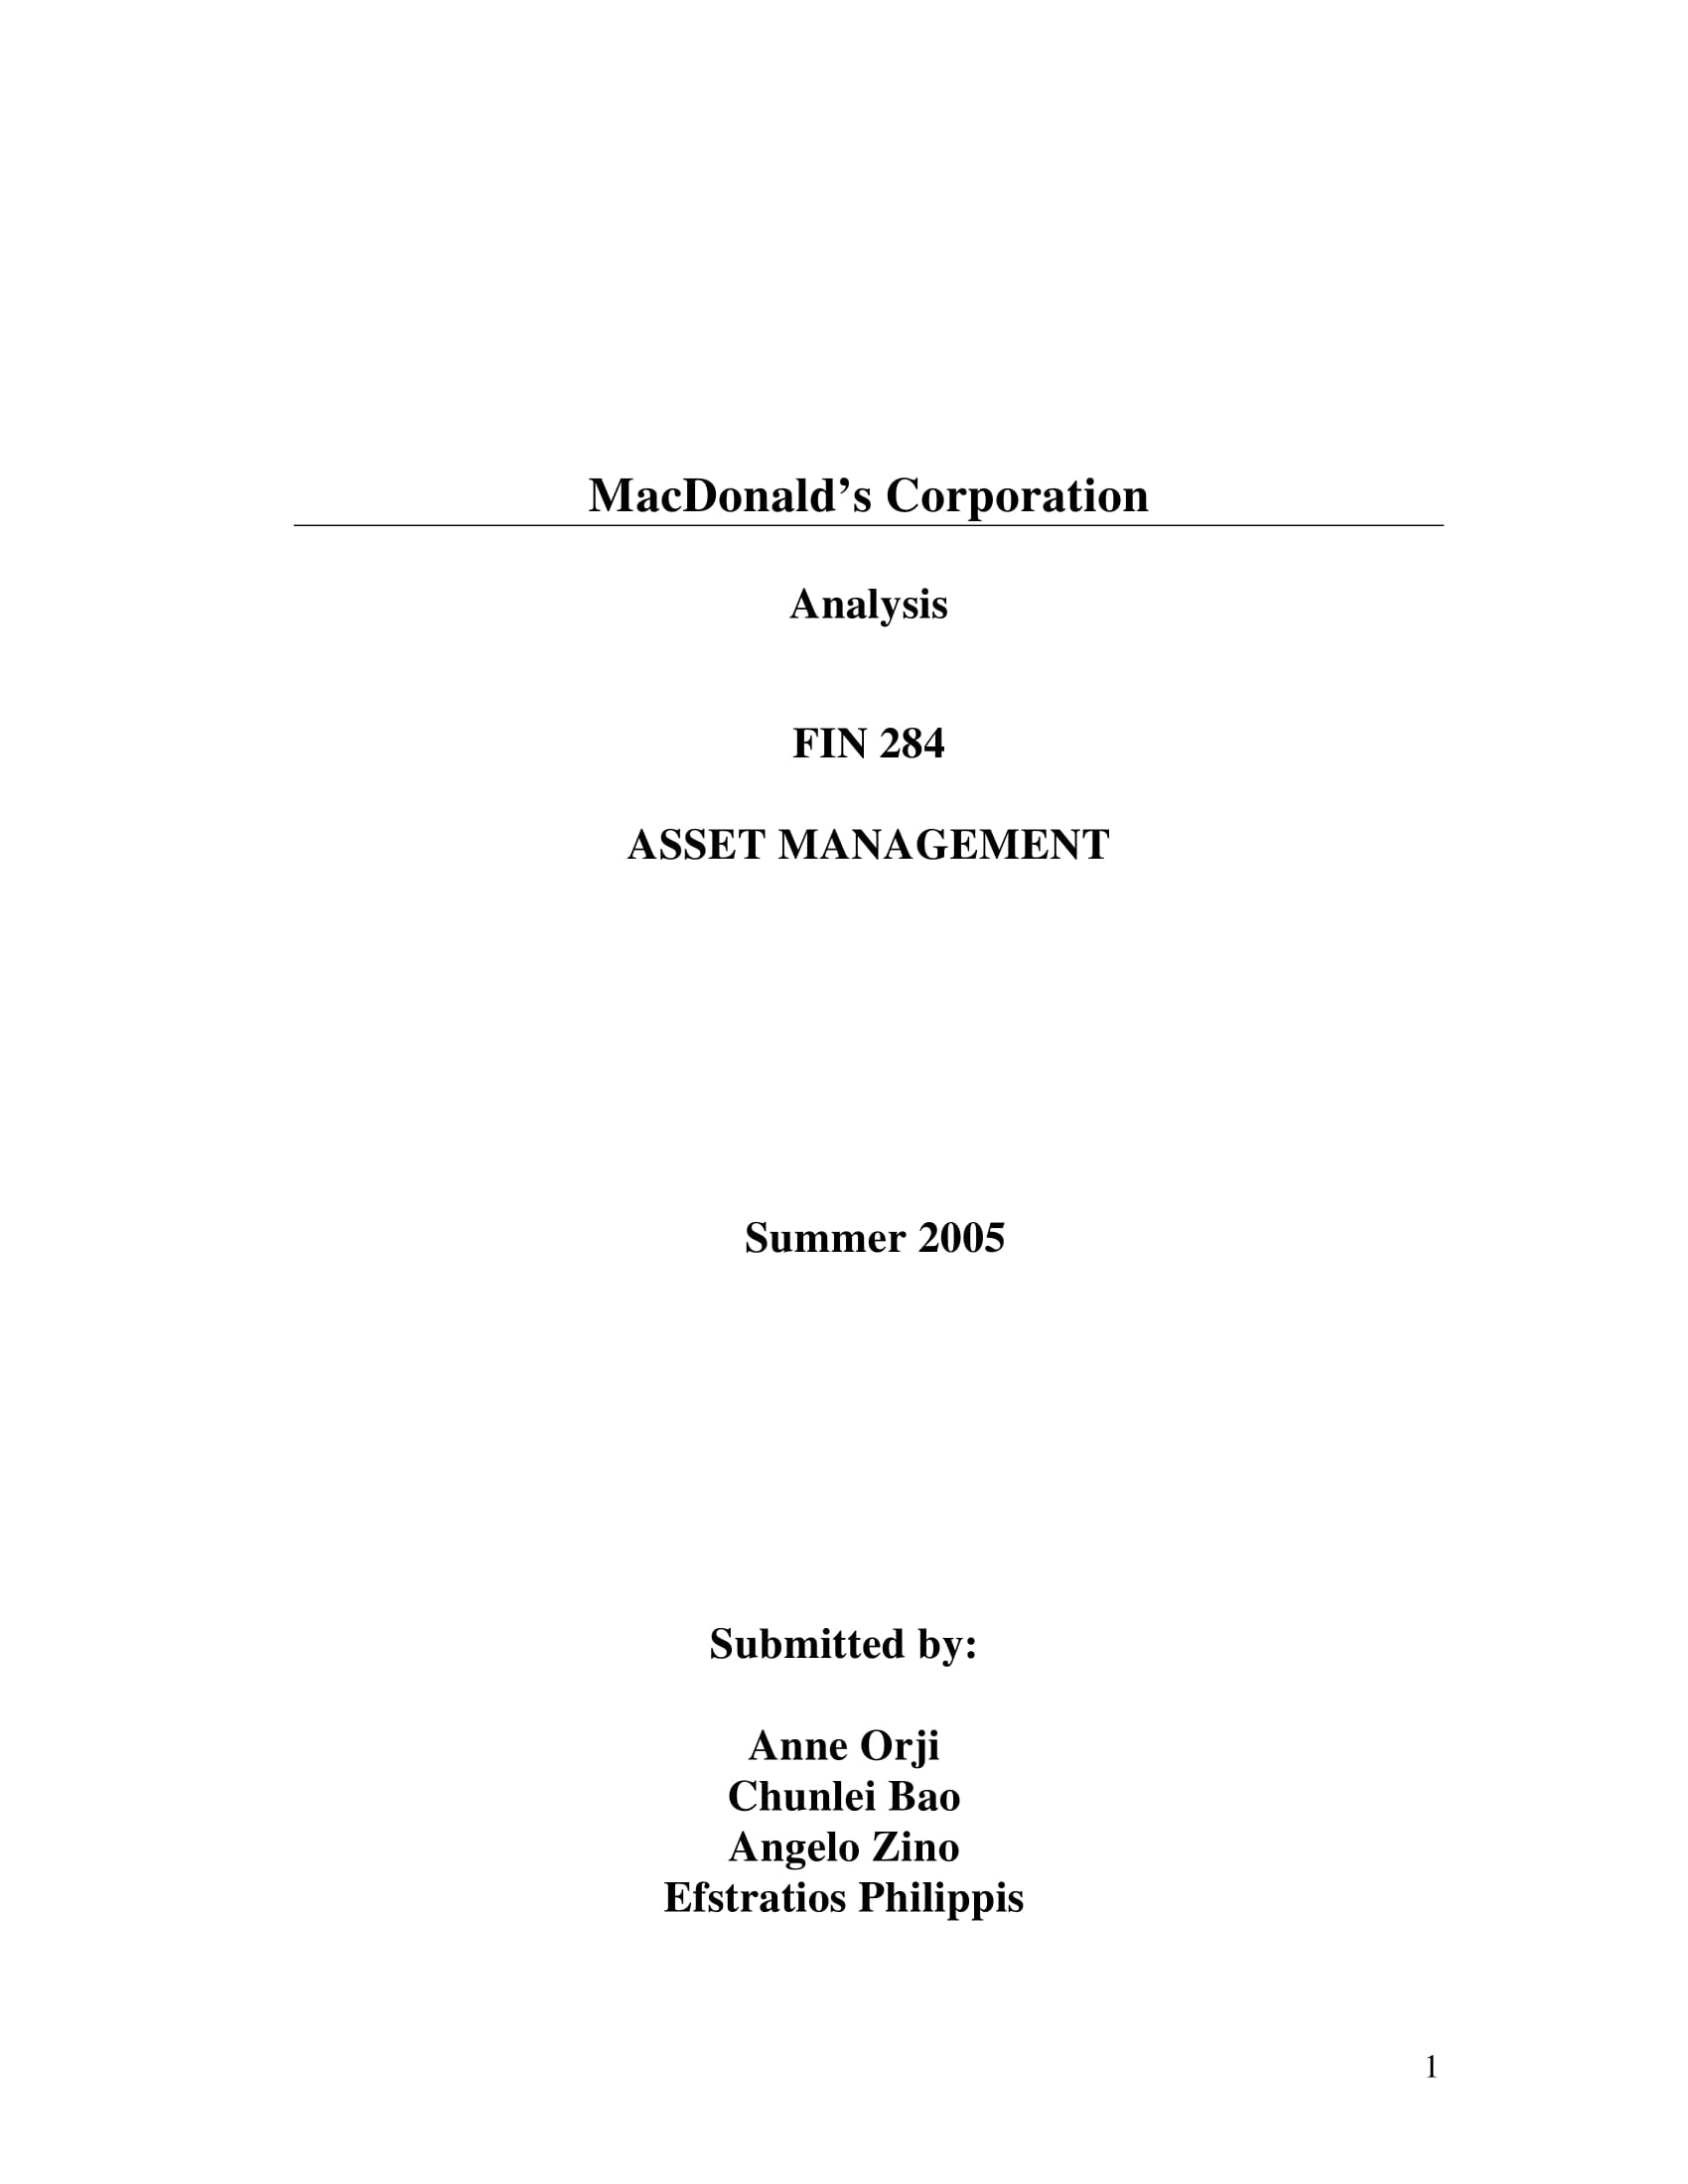 fast food restaurant asset management and swot analysis example 01